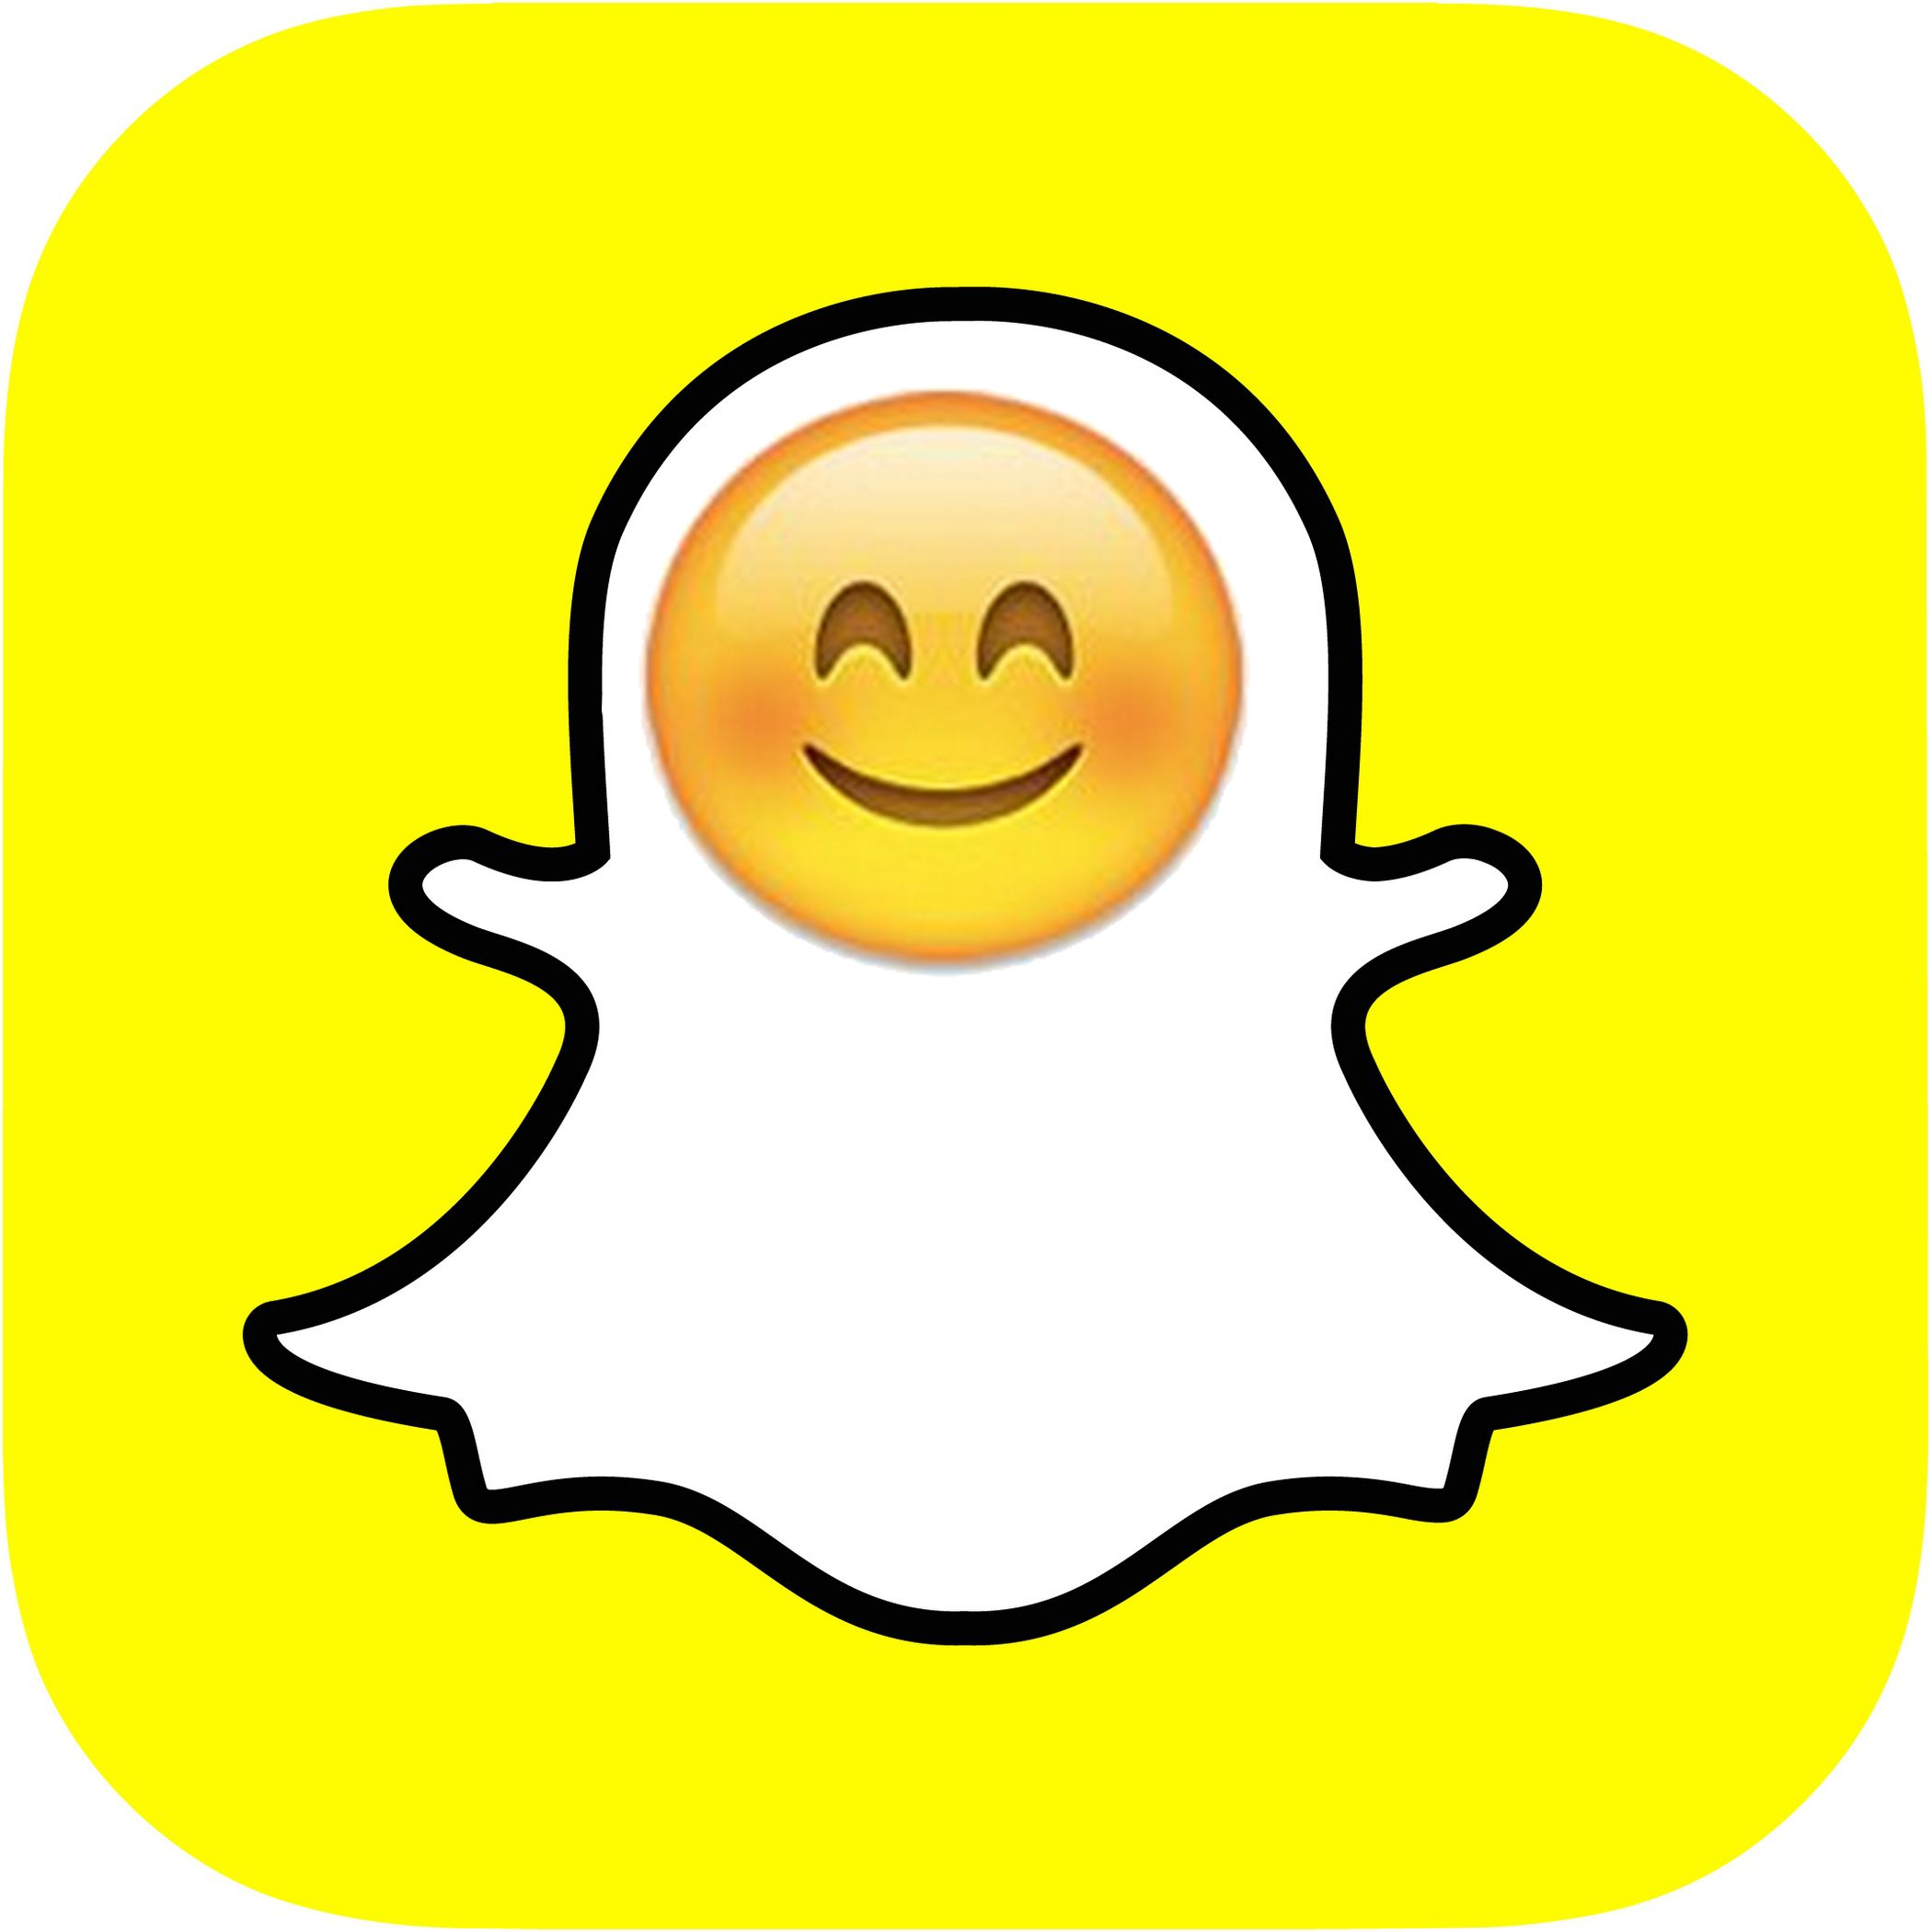 Alien face emoji meaning - Confused About The New Snapchat Emoji And Trophy Case Items Meanings And How To Get